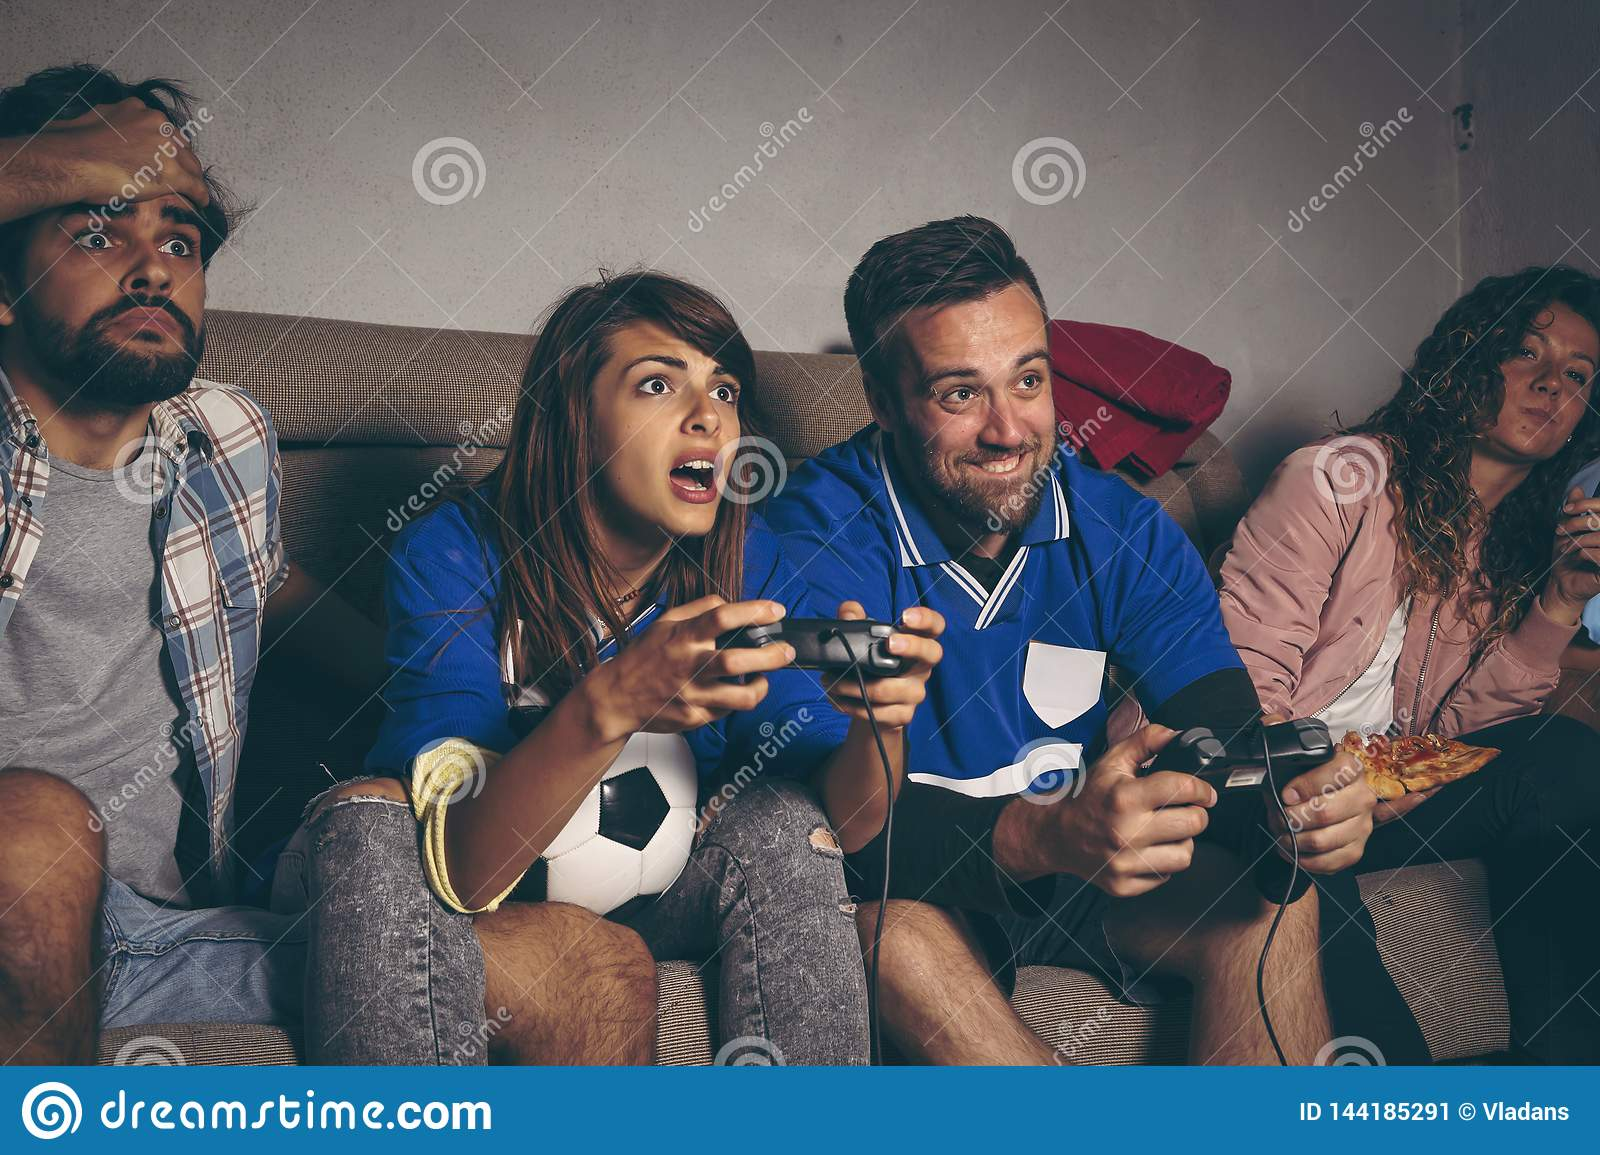 Friends playing a football video game